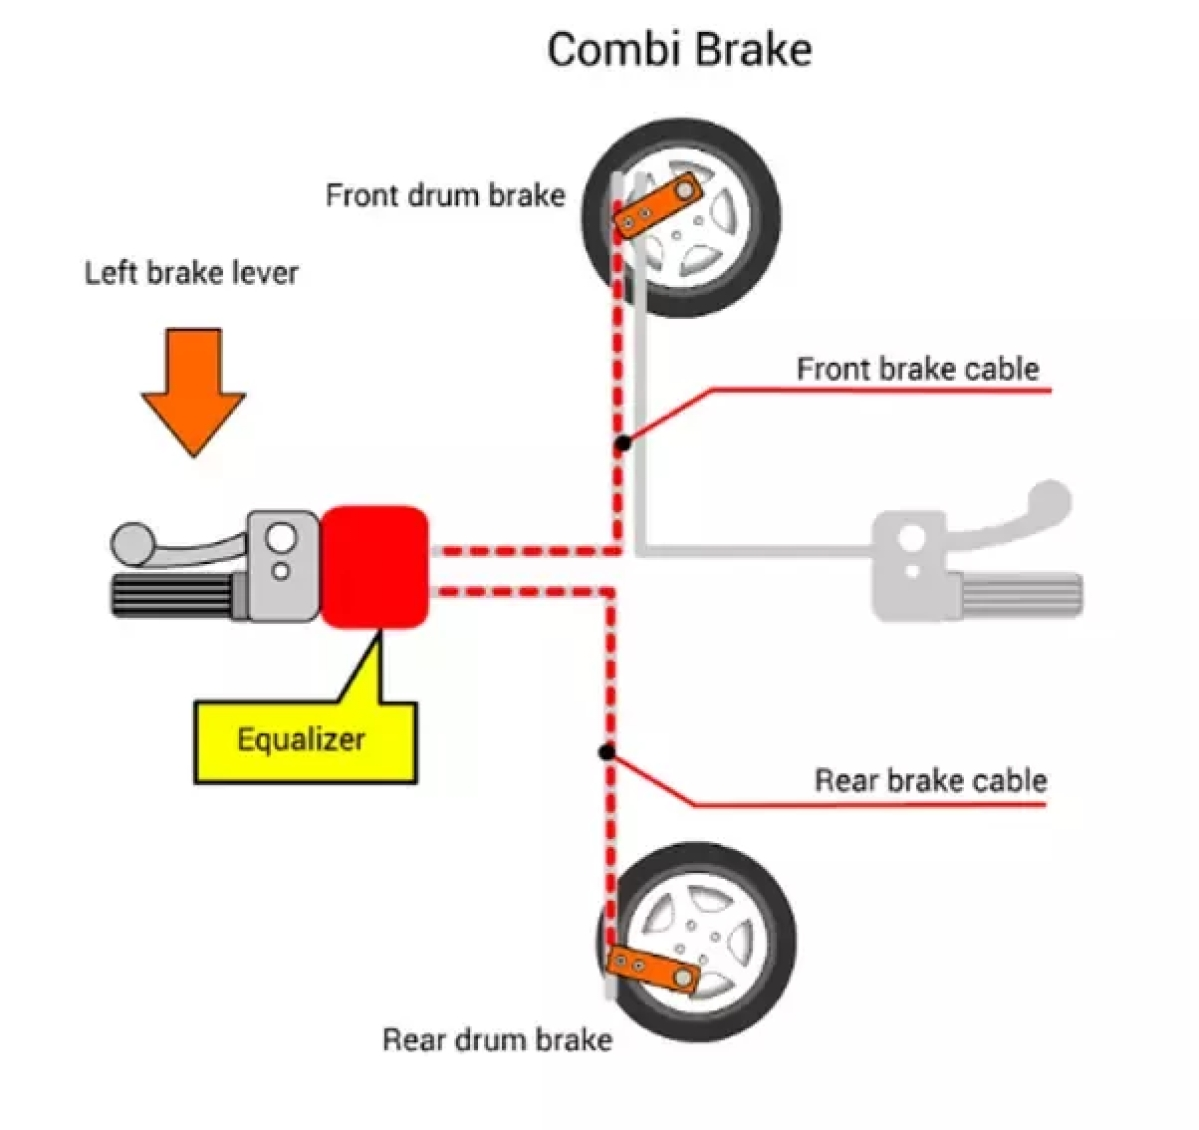 The combi-braking system on the Honda Activa.